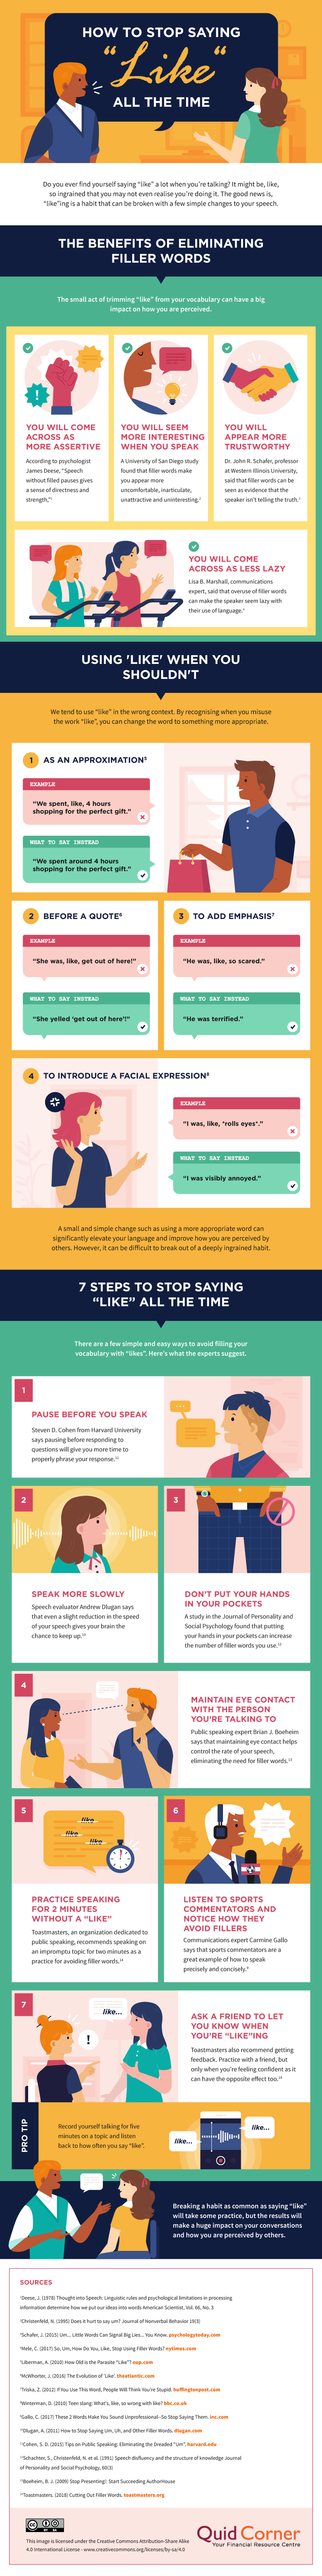 "How to Stop Saying ""Like"" All the Time #infographic"